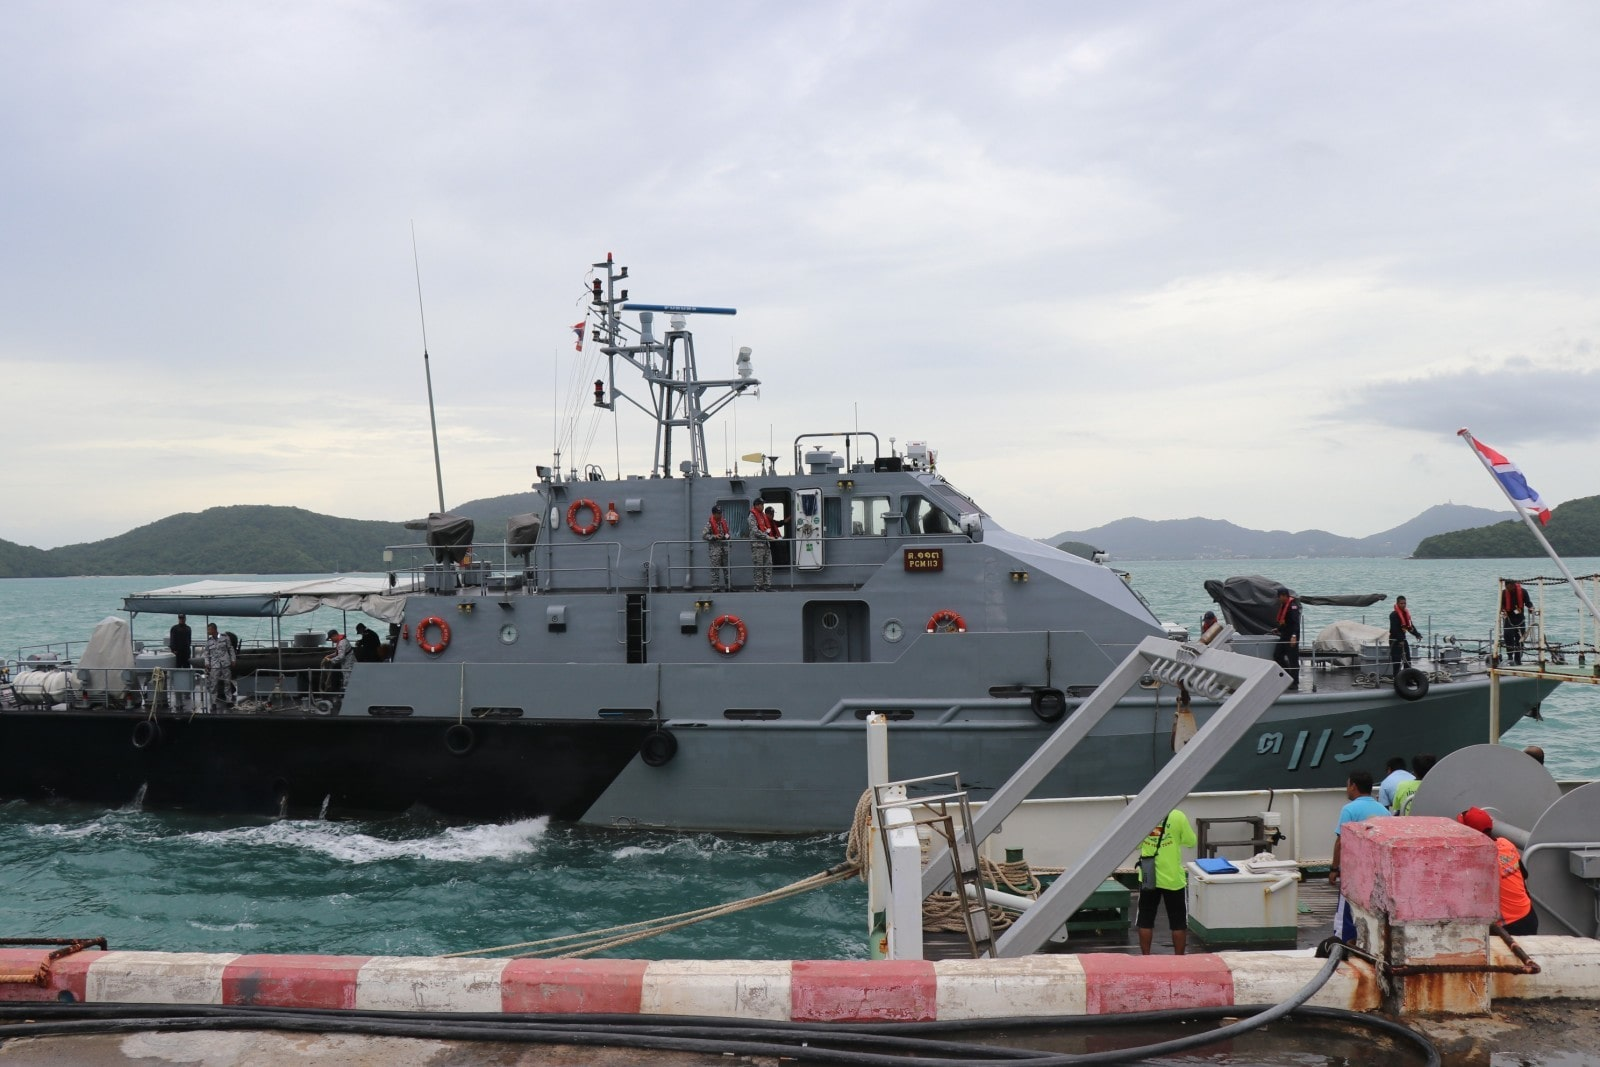 Phuket boat disaster toll: 43 dead, 4 remain missing | The Thaiger